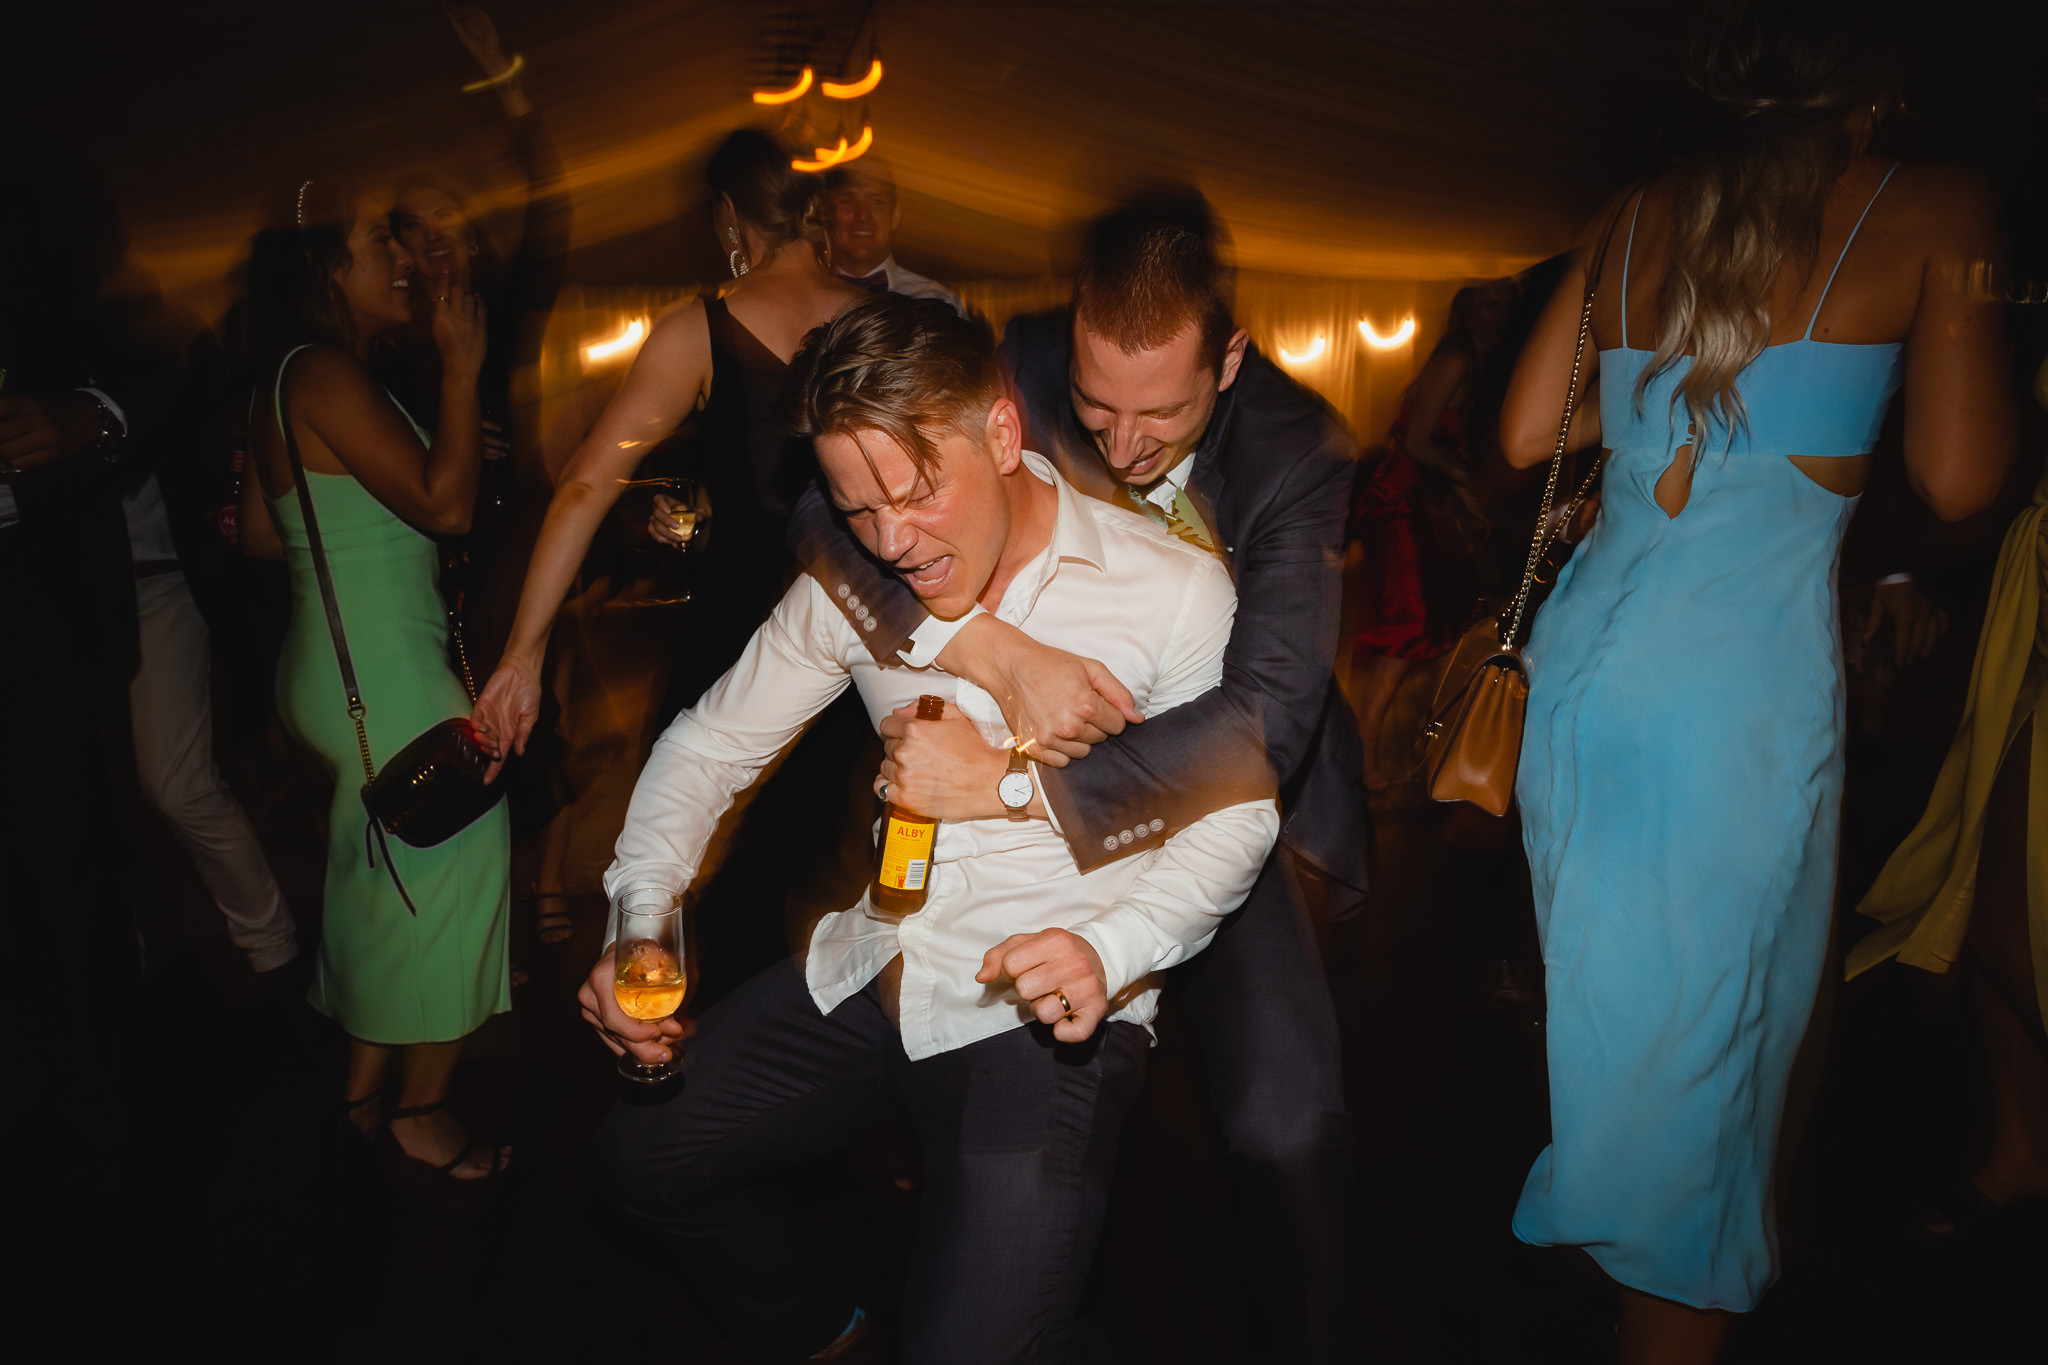 drunken embrace between groom and groomsman on wedding dance floor